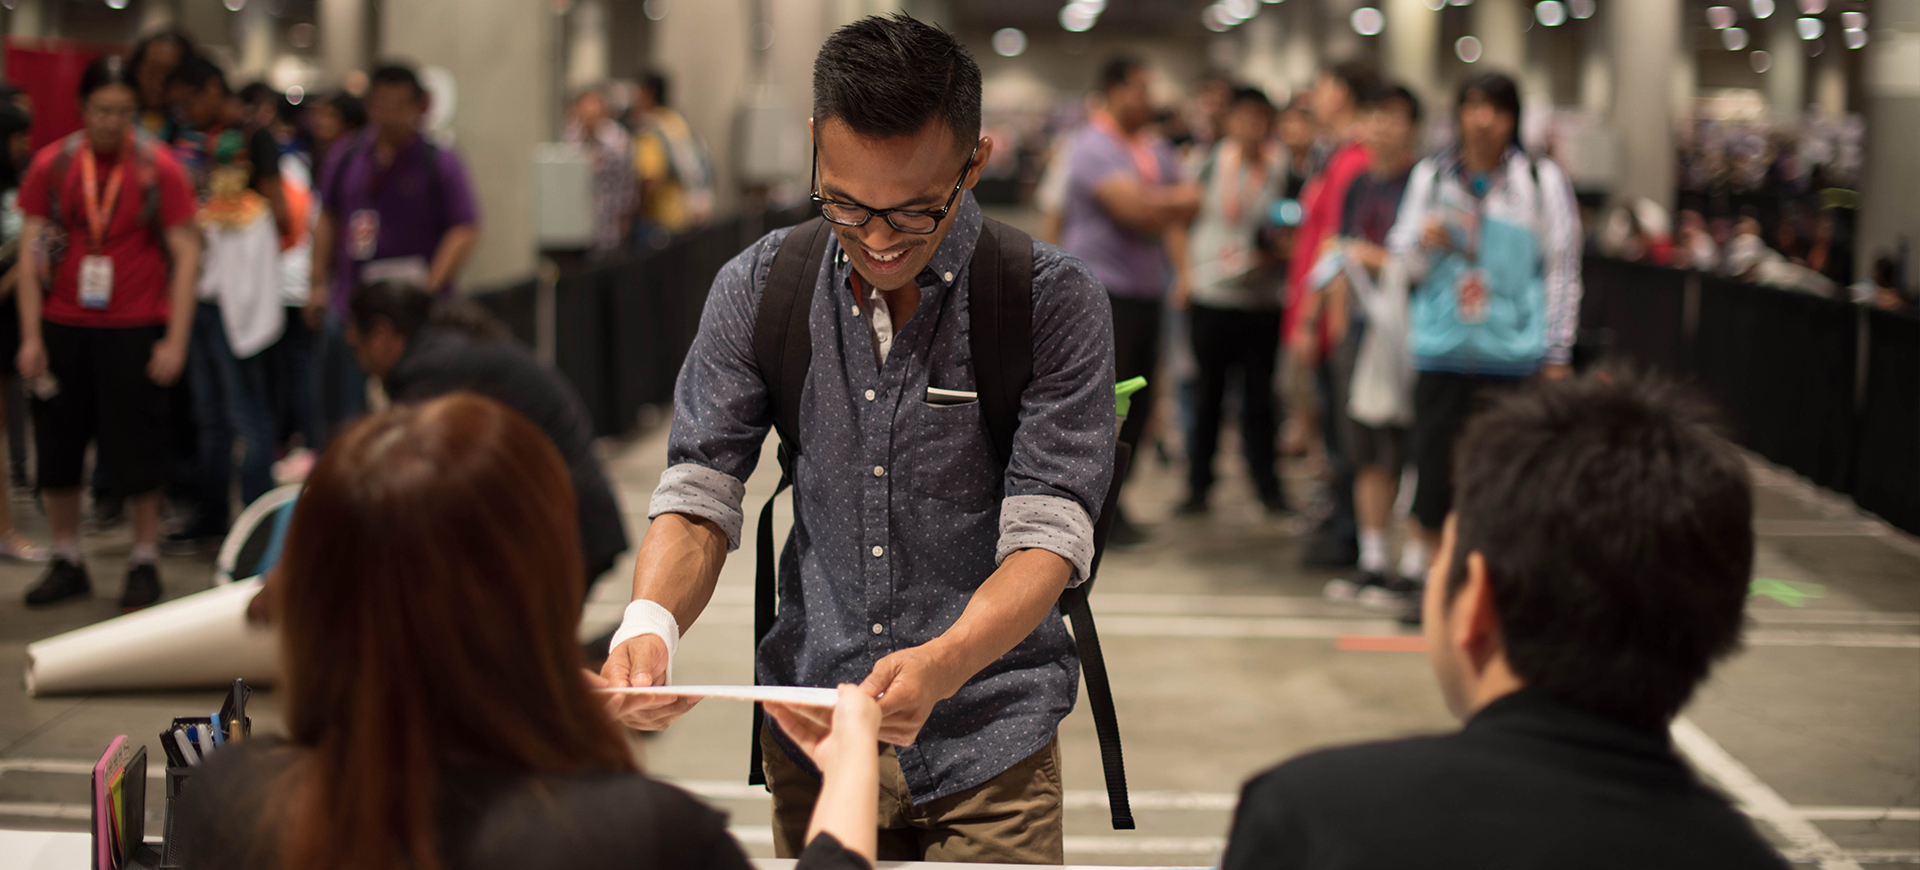 Please Read This Page Carefully To Find Out How Get An Autograph From Guests At Anime Expo However Note That Policy Does NOT Apply